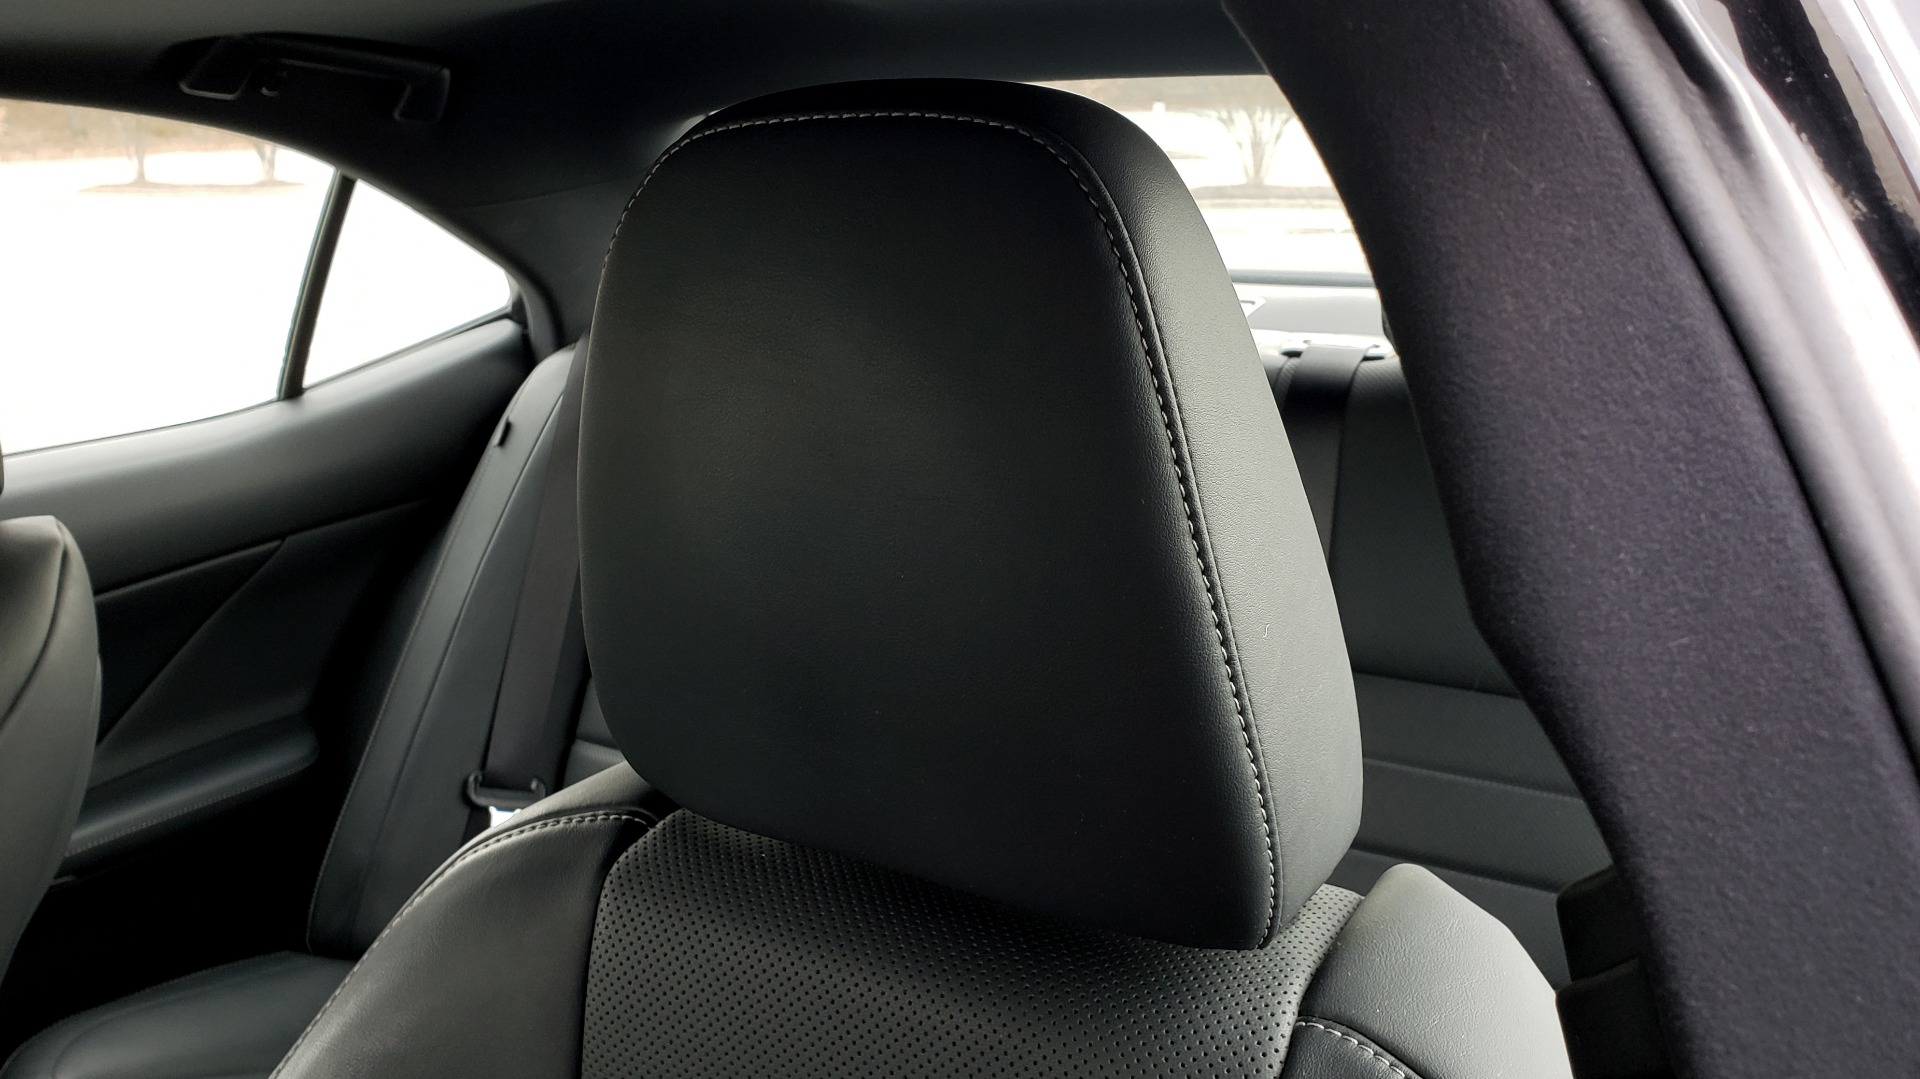 Used 2015 Lexus IS 250 F-SPORT / BLIND SPOT MON / SUNROOF / REARVIEW for sale Sold at Formula Imports in Charlotte NC 28227 33